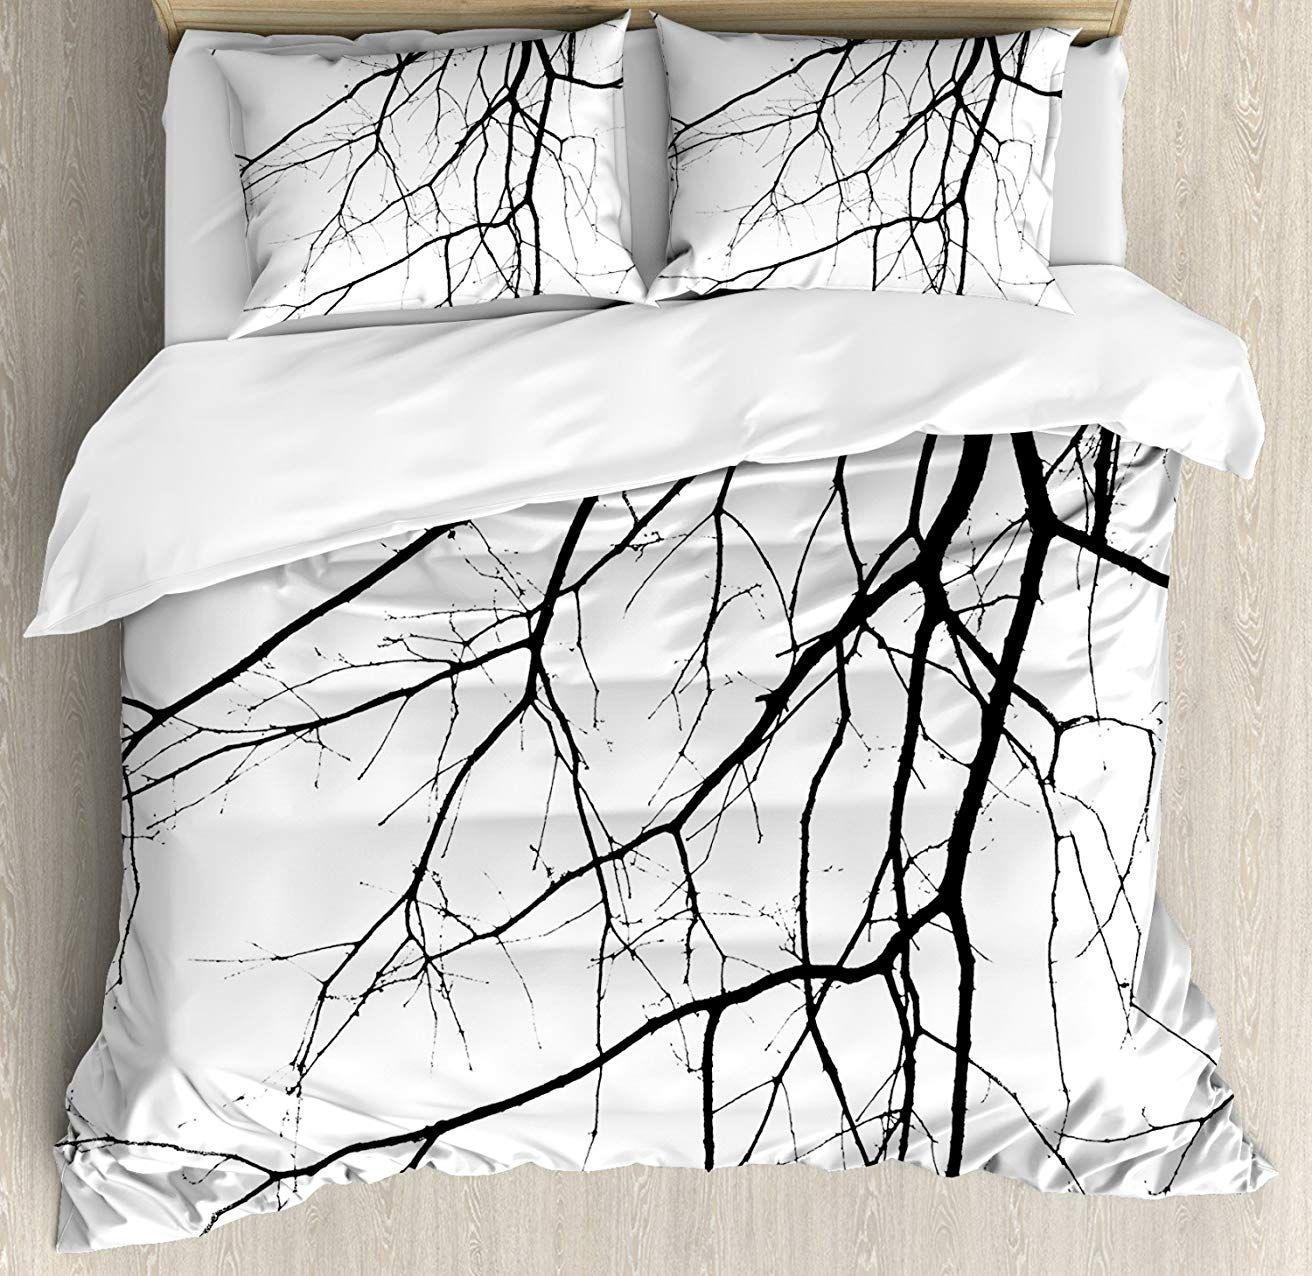 Ambesonne Black And White Duvet Cover Set King Size Macro Leafless Winter Tree Branches Idyllic Twigs Of Duvet Cover Sets White Duvet Covers Black Duvet Cover